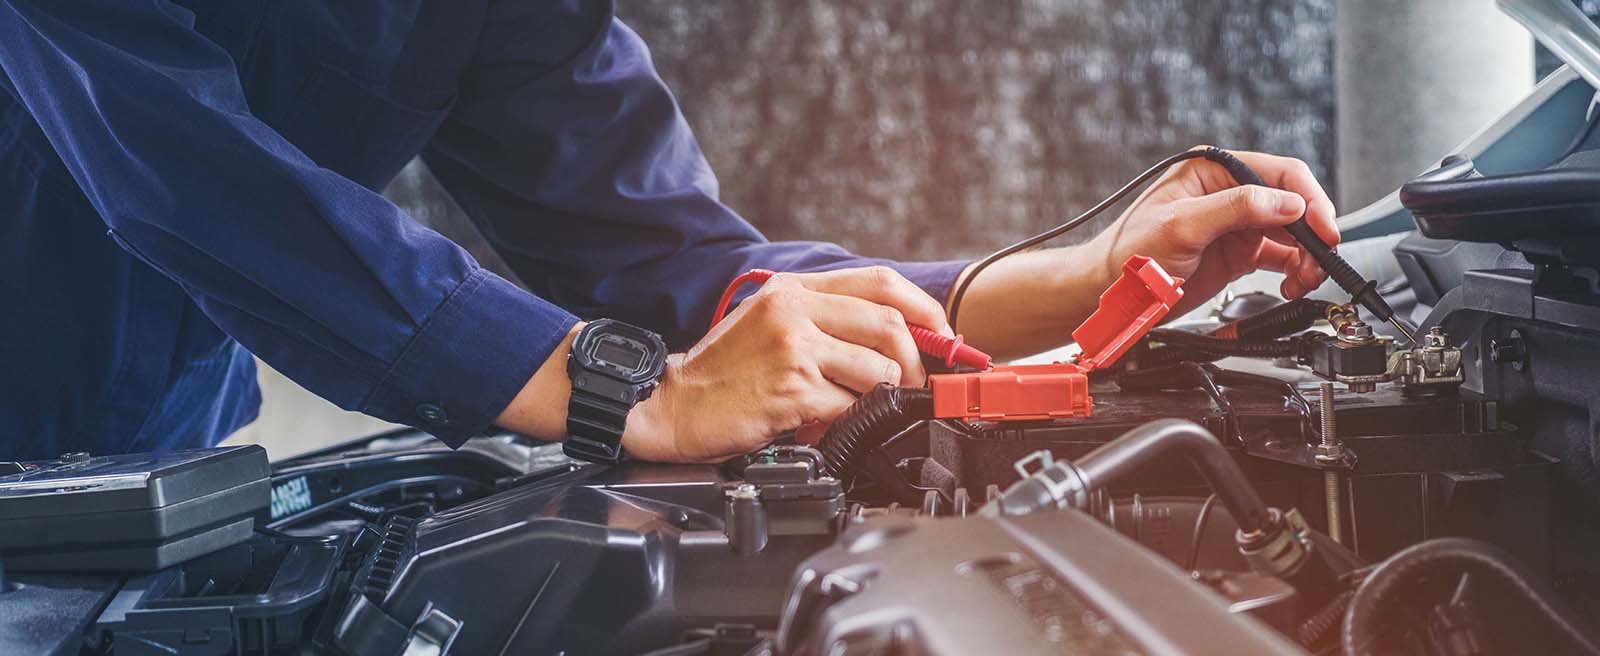 Auto technician working on battery